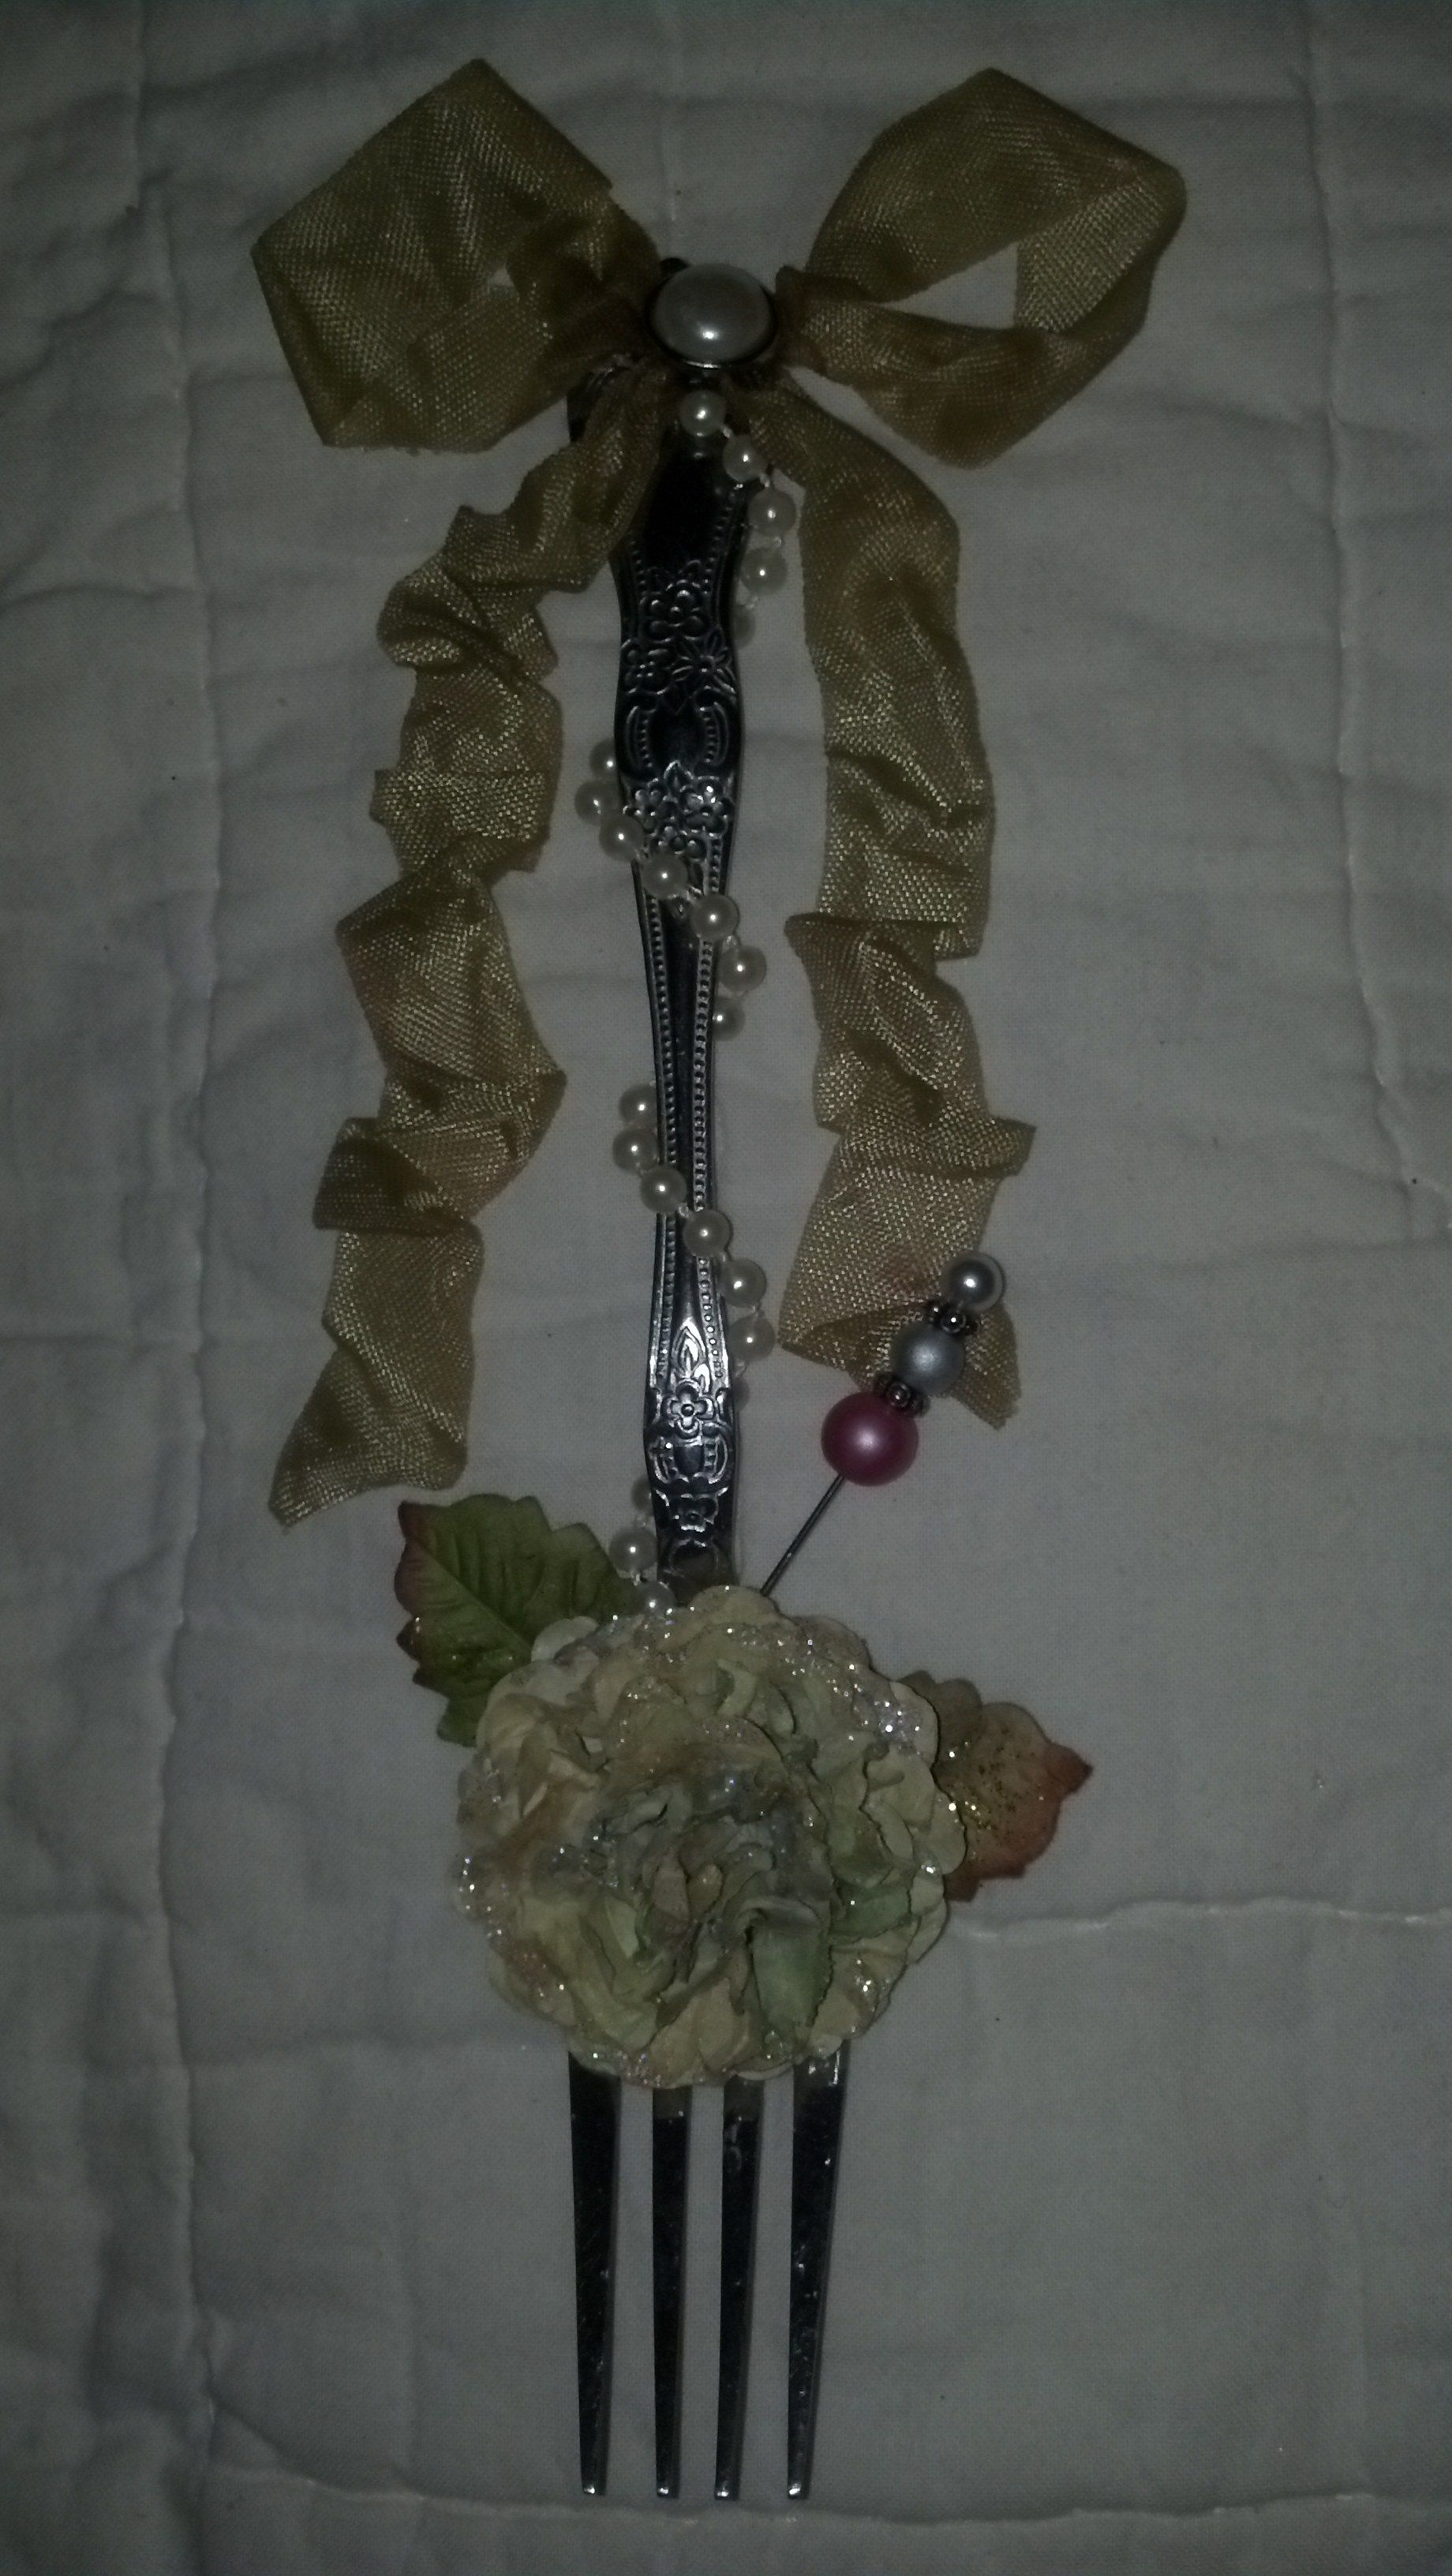 a fork that I altered for a swap